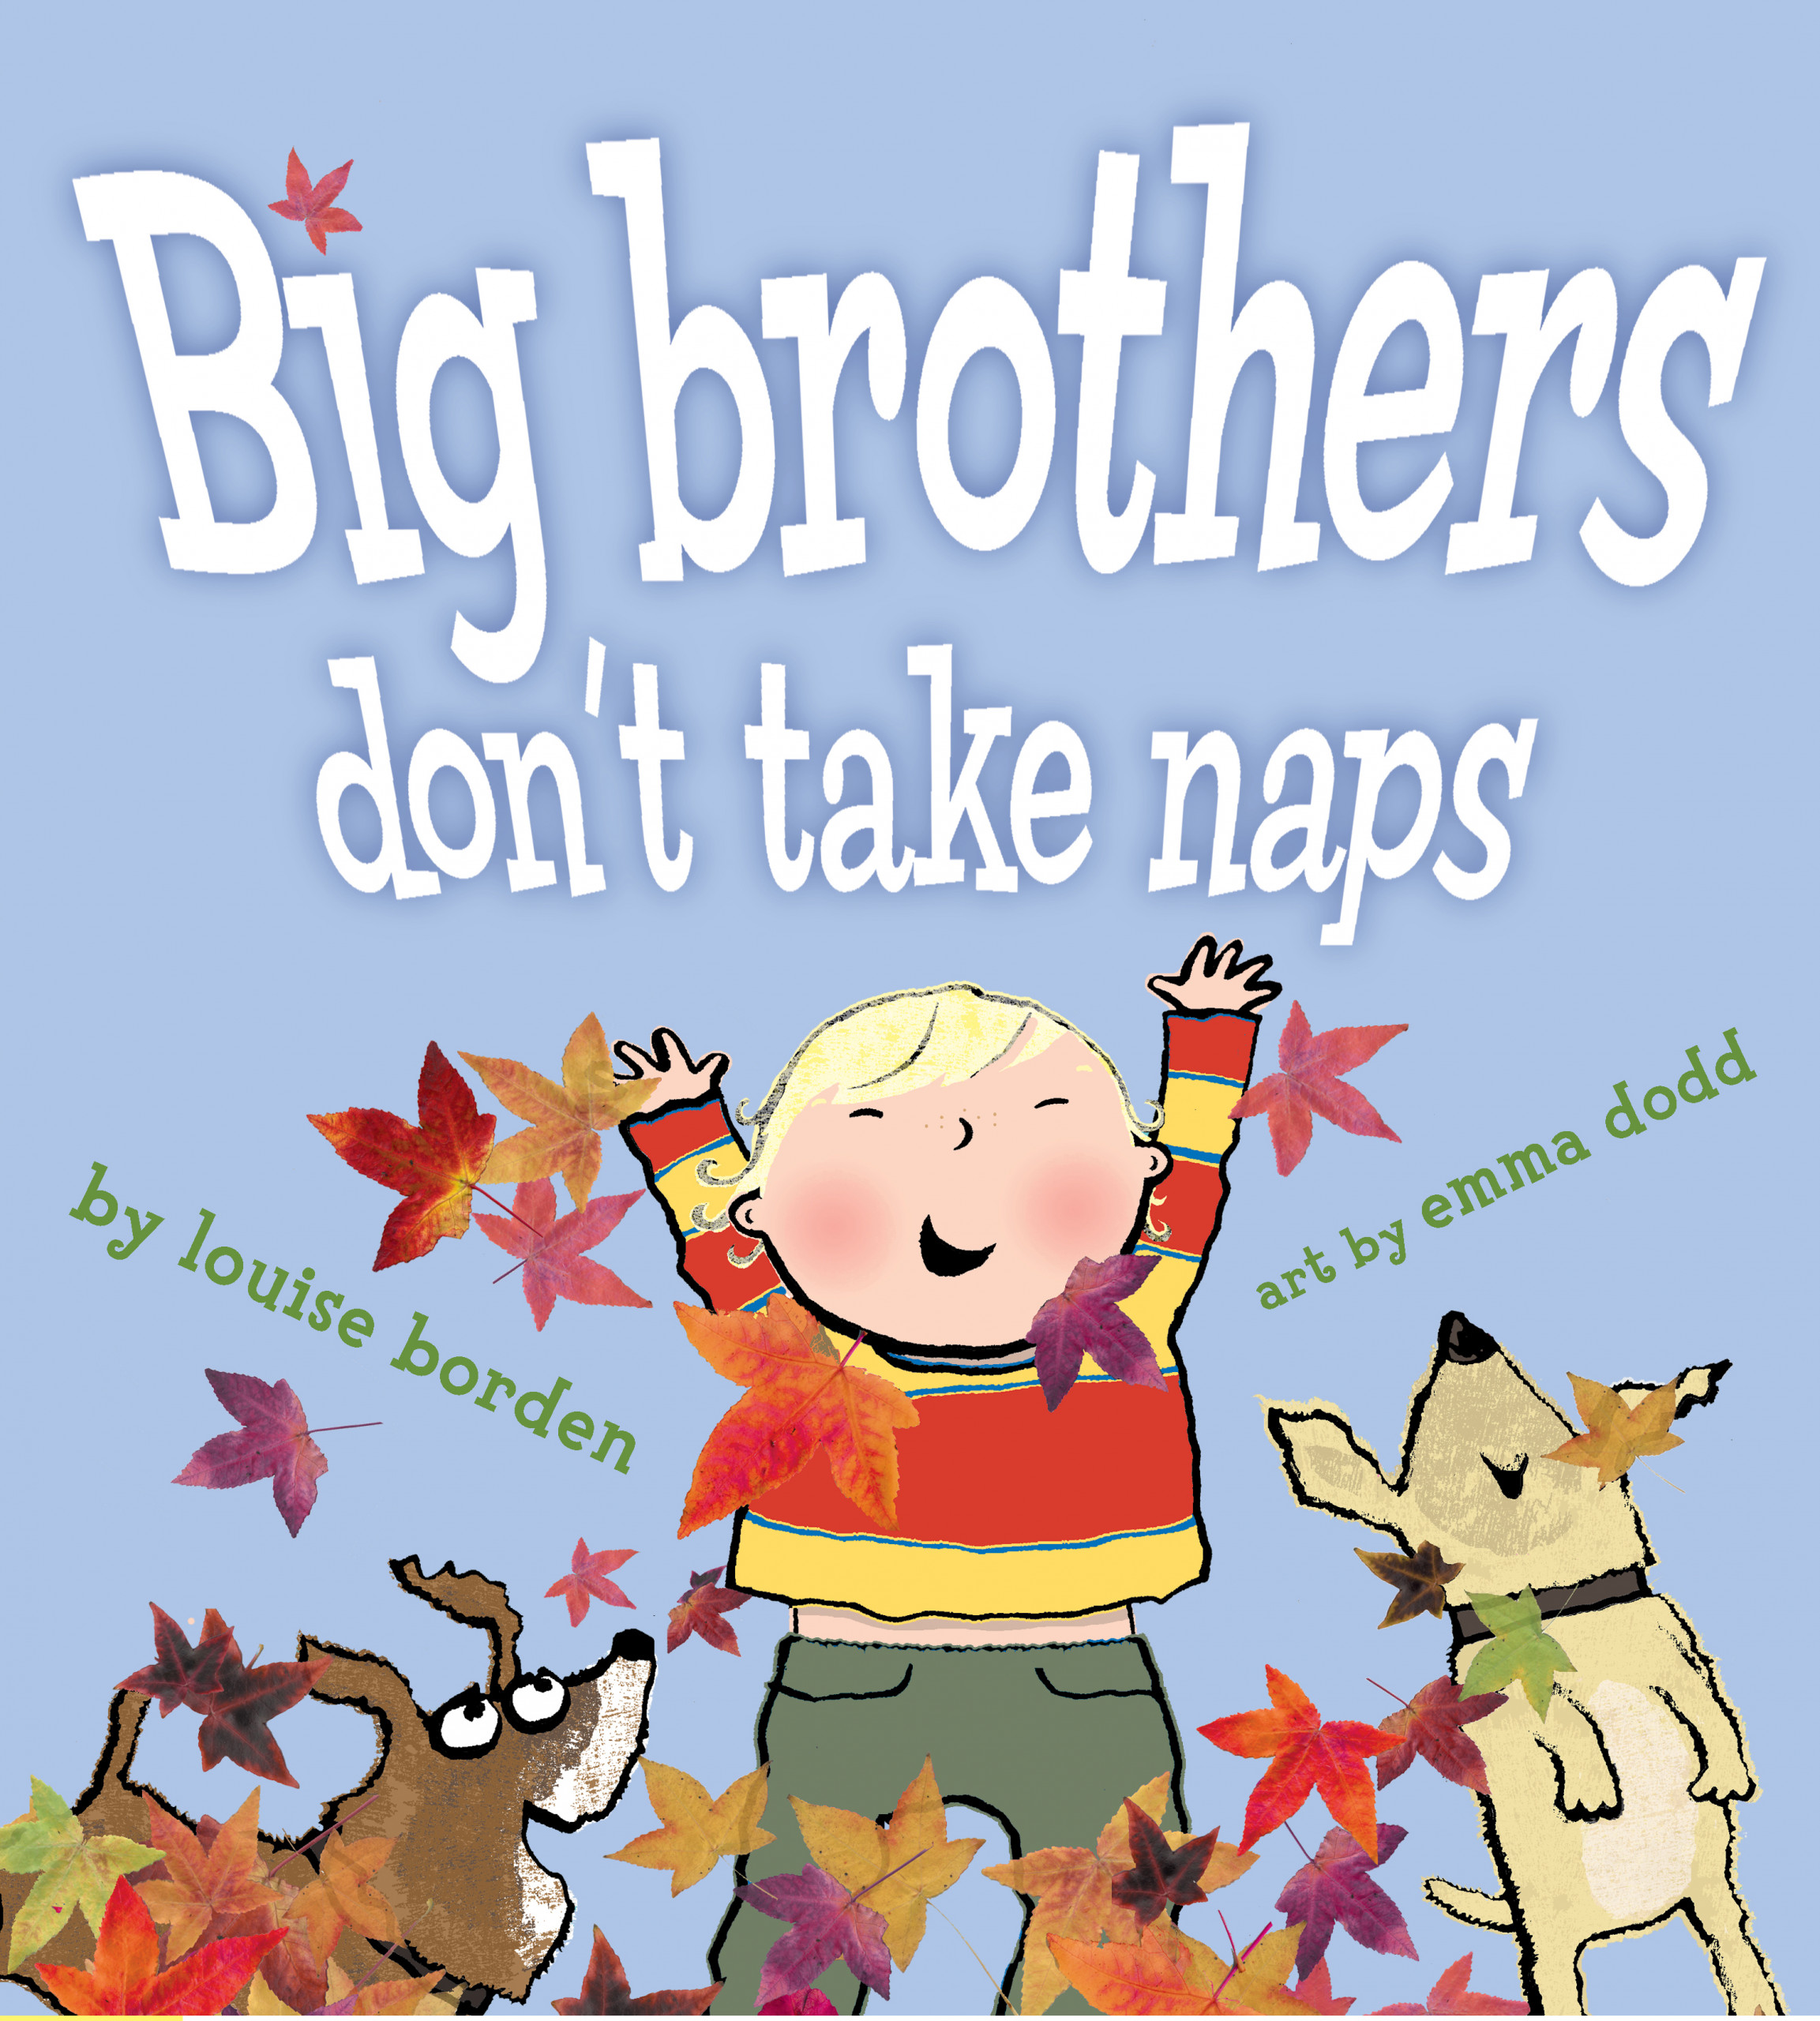 book cover for Big brothers don't take naps